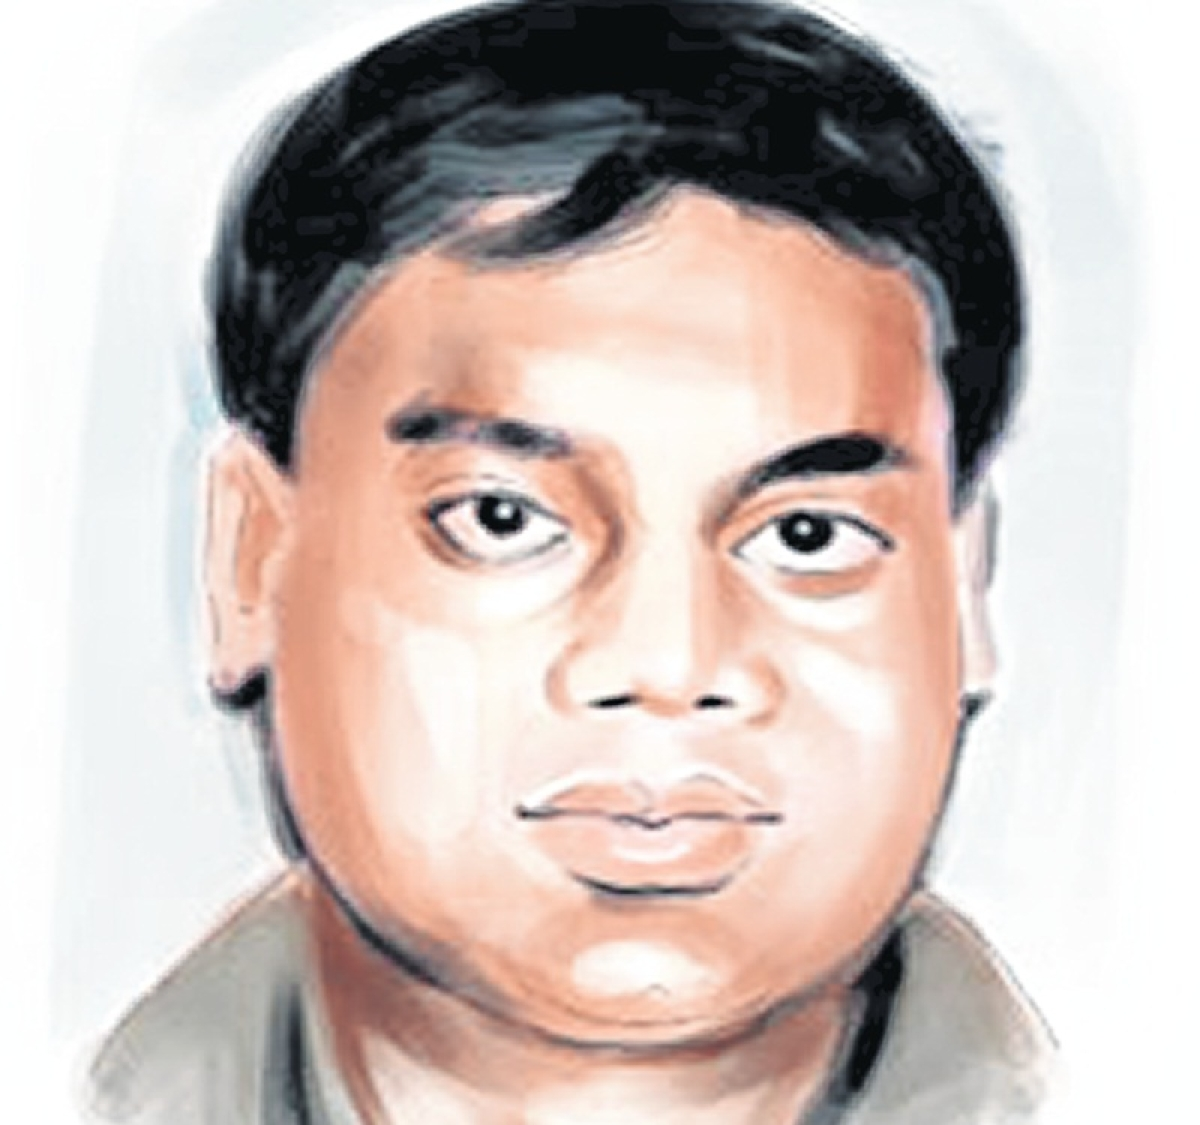 Mumbai: Aide of gangster to be tried in MCOCA court again